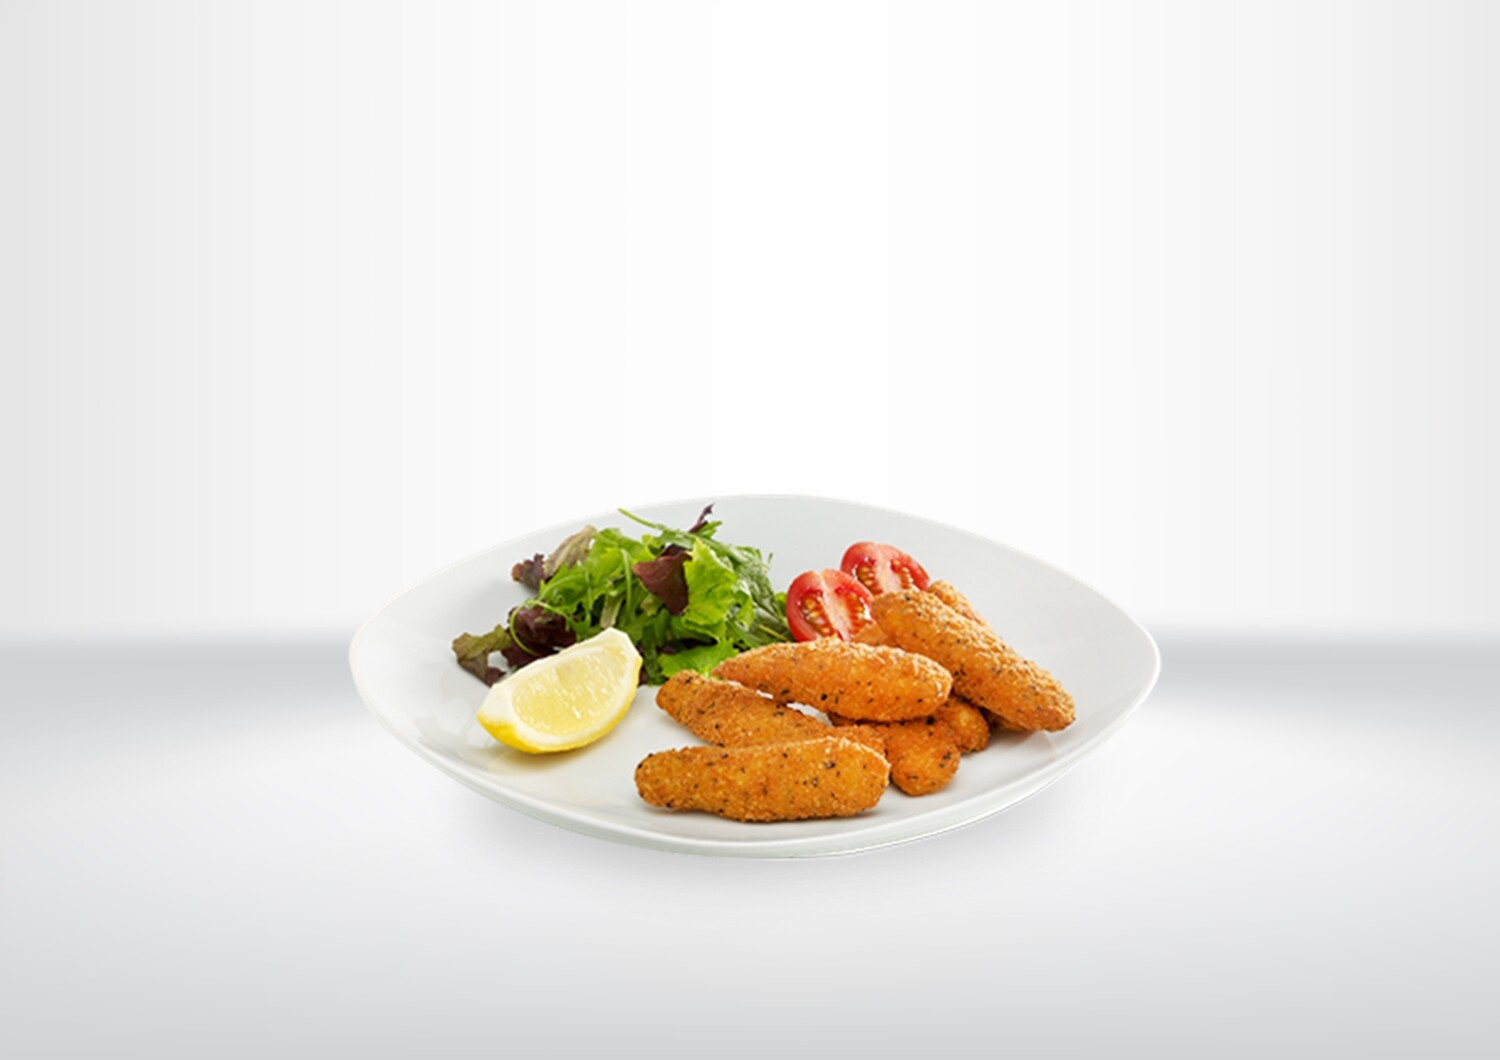 Southern Fried Chicken Breast Strips 22g